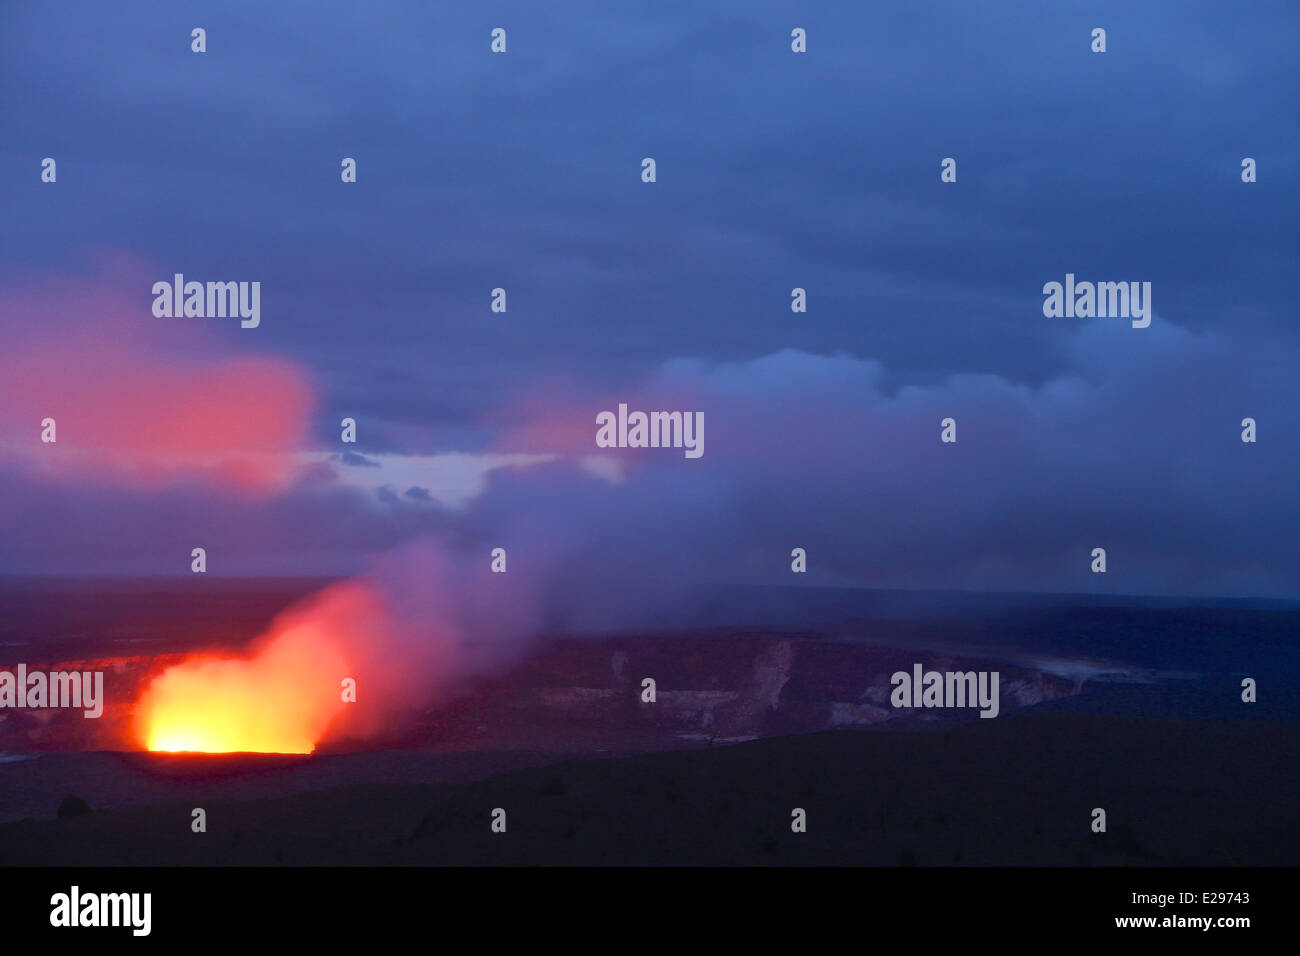 The active Halemaumau crater of Kilauea in Volcanoes National Park, Big Island of Hawaii - Stock Image